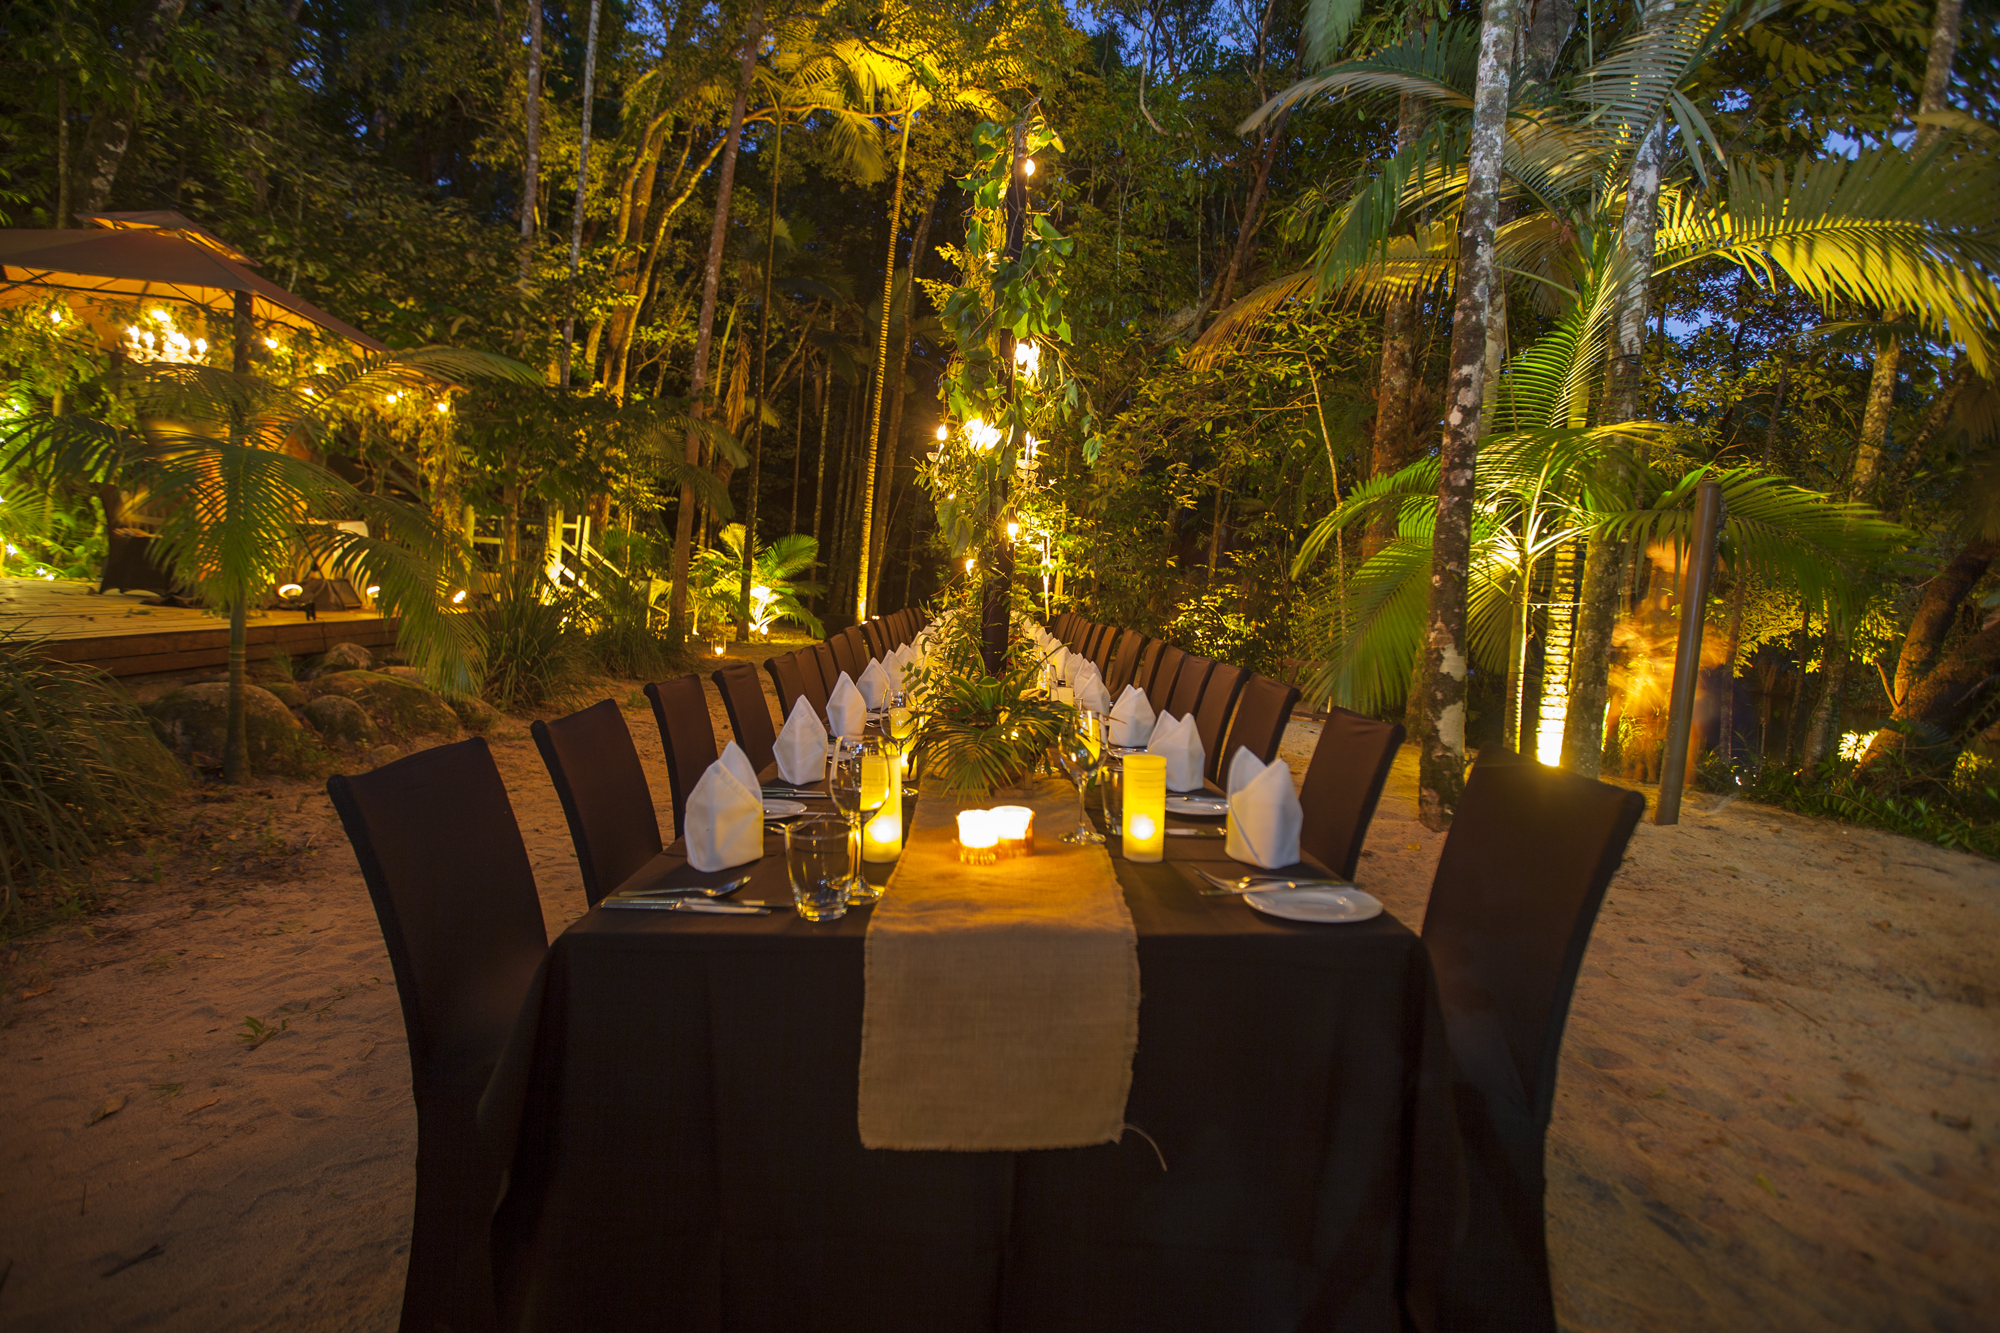 Silky Oaks - On the edge of the Daintree Rainforest lies an enchanting little lodge. Dine under the stars and the candelabras, and enjoy the sound of the Mossman River streaming along beside you.